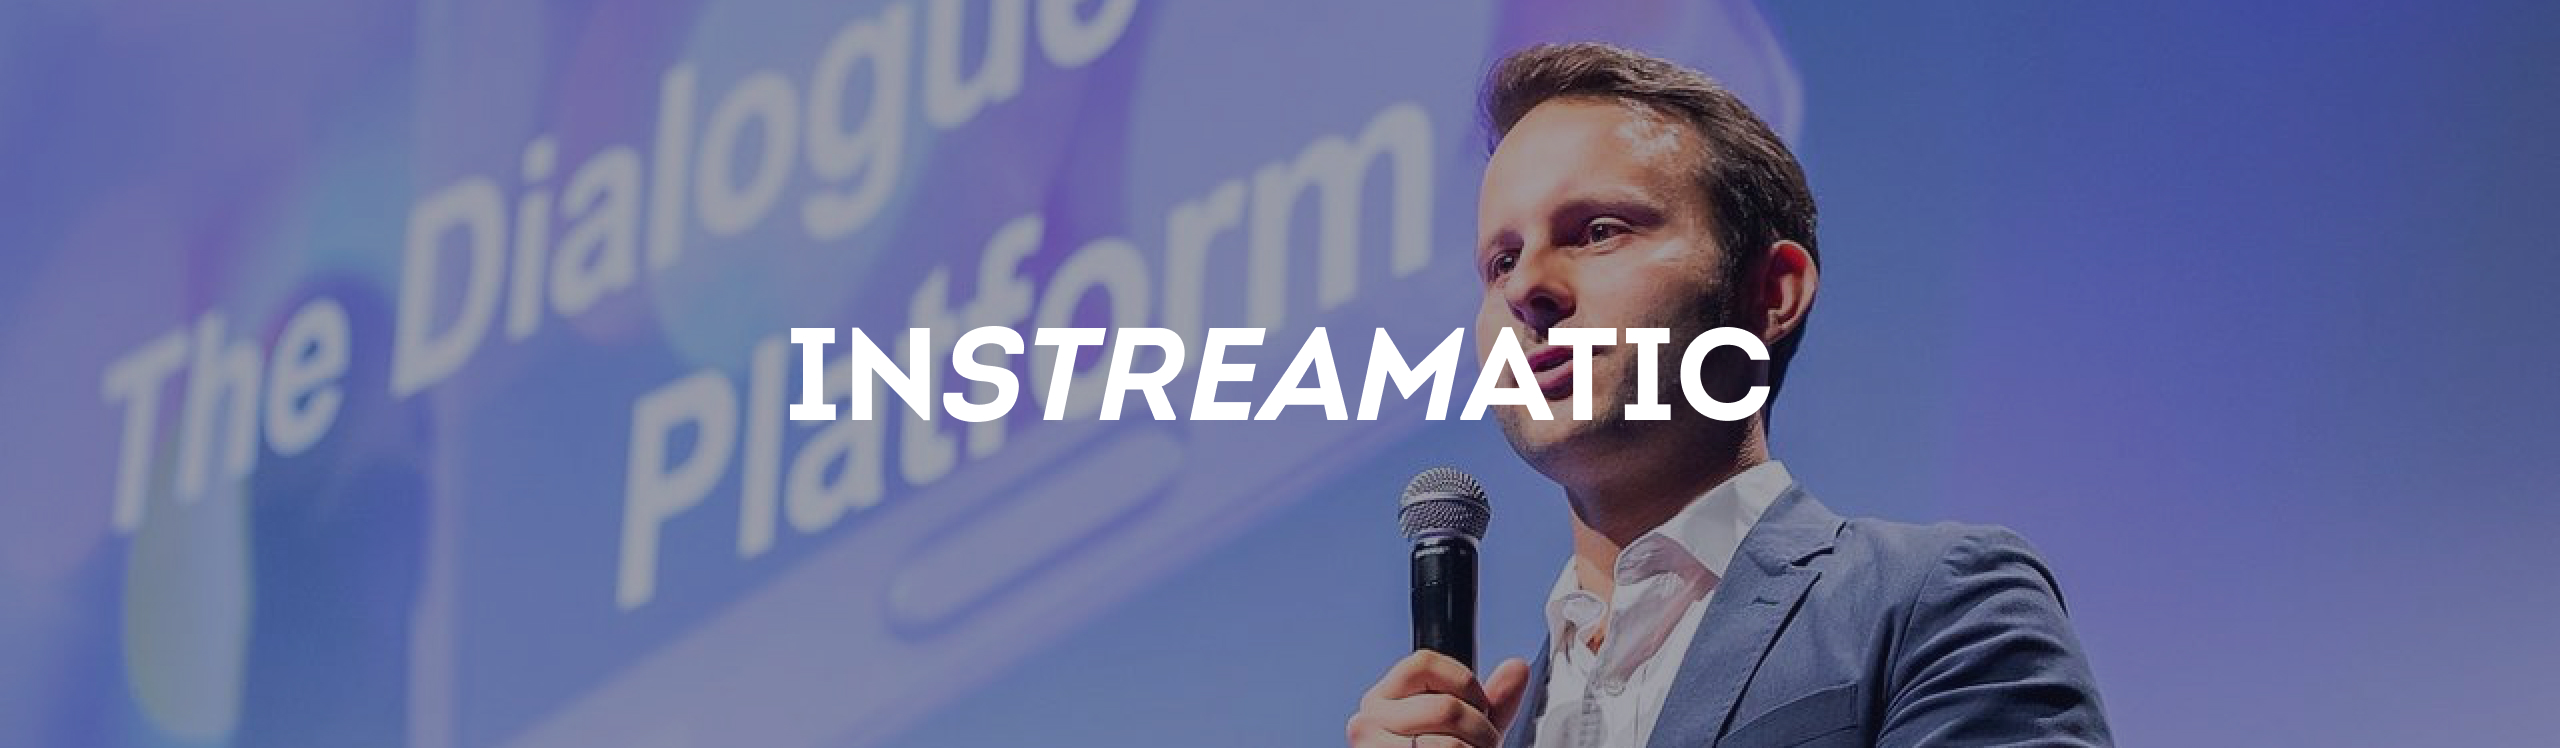 Diffco is proud to congratulate Instreamatic on raising Series A funding